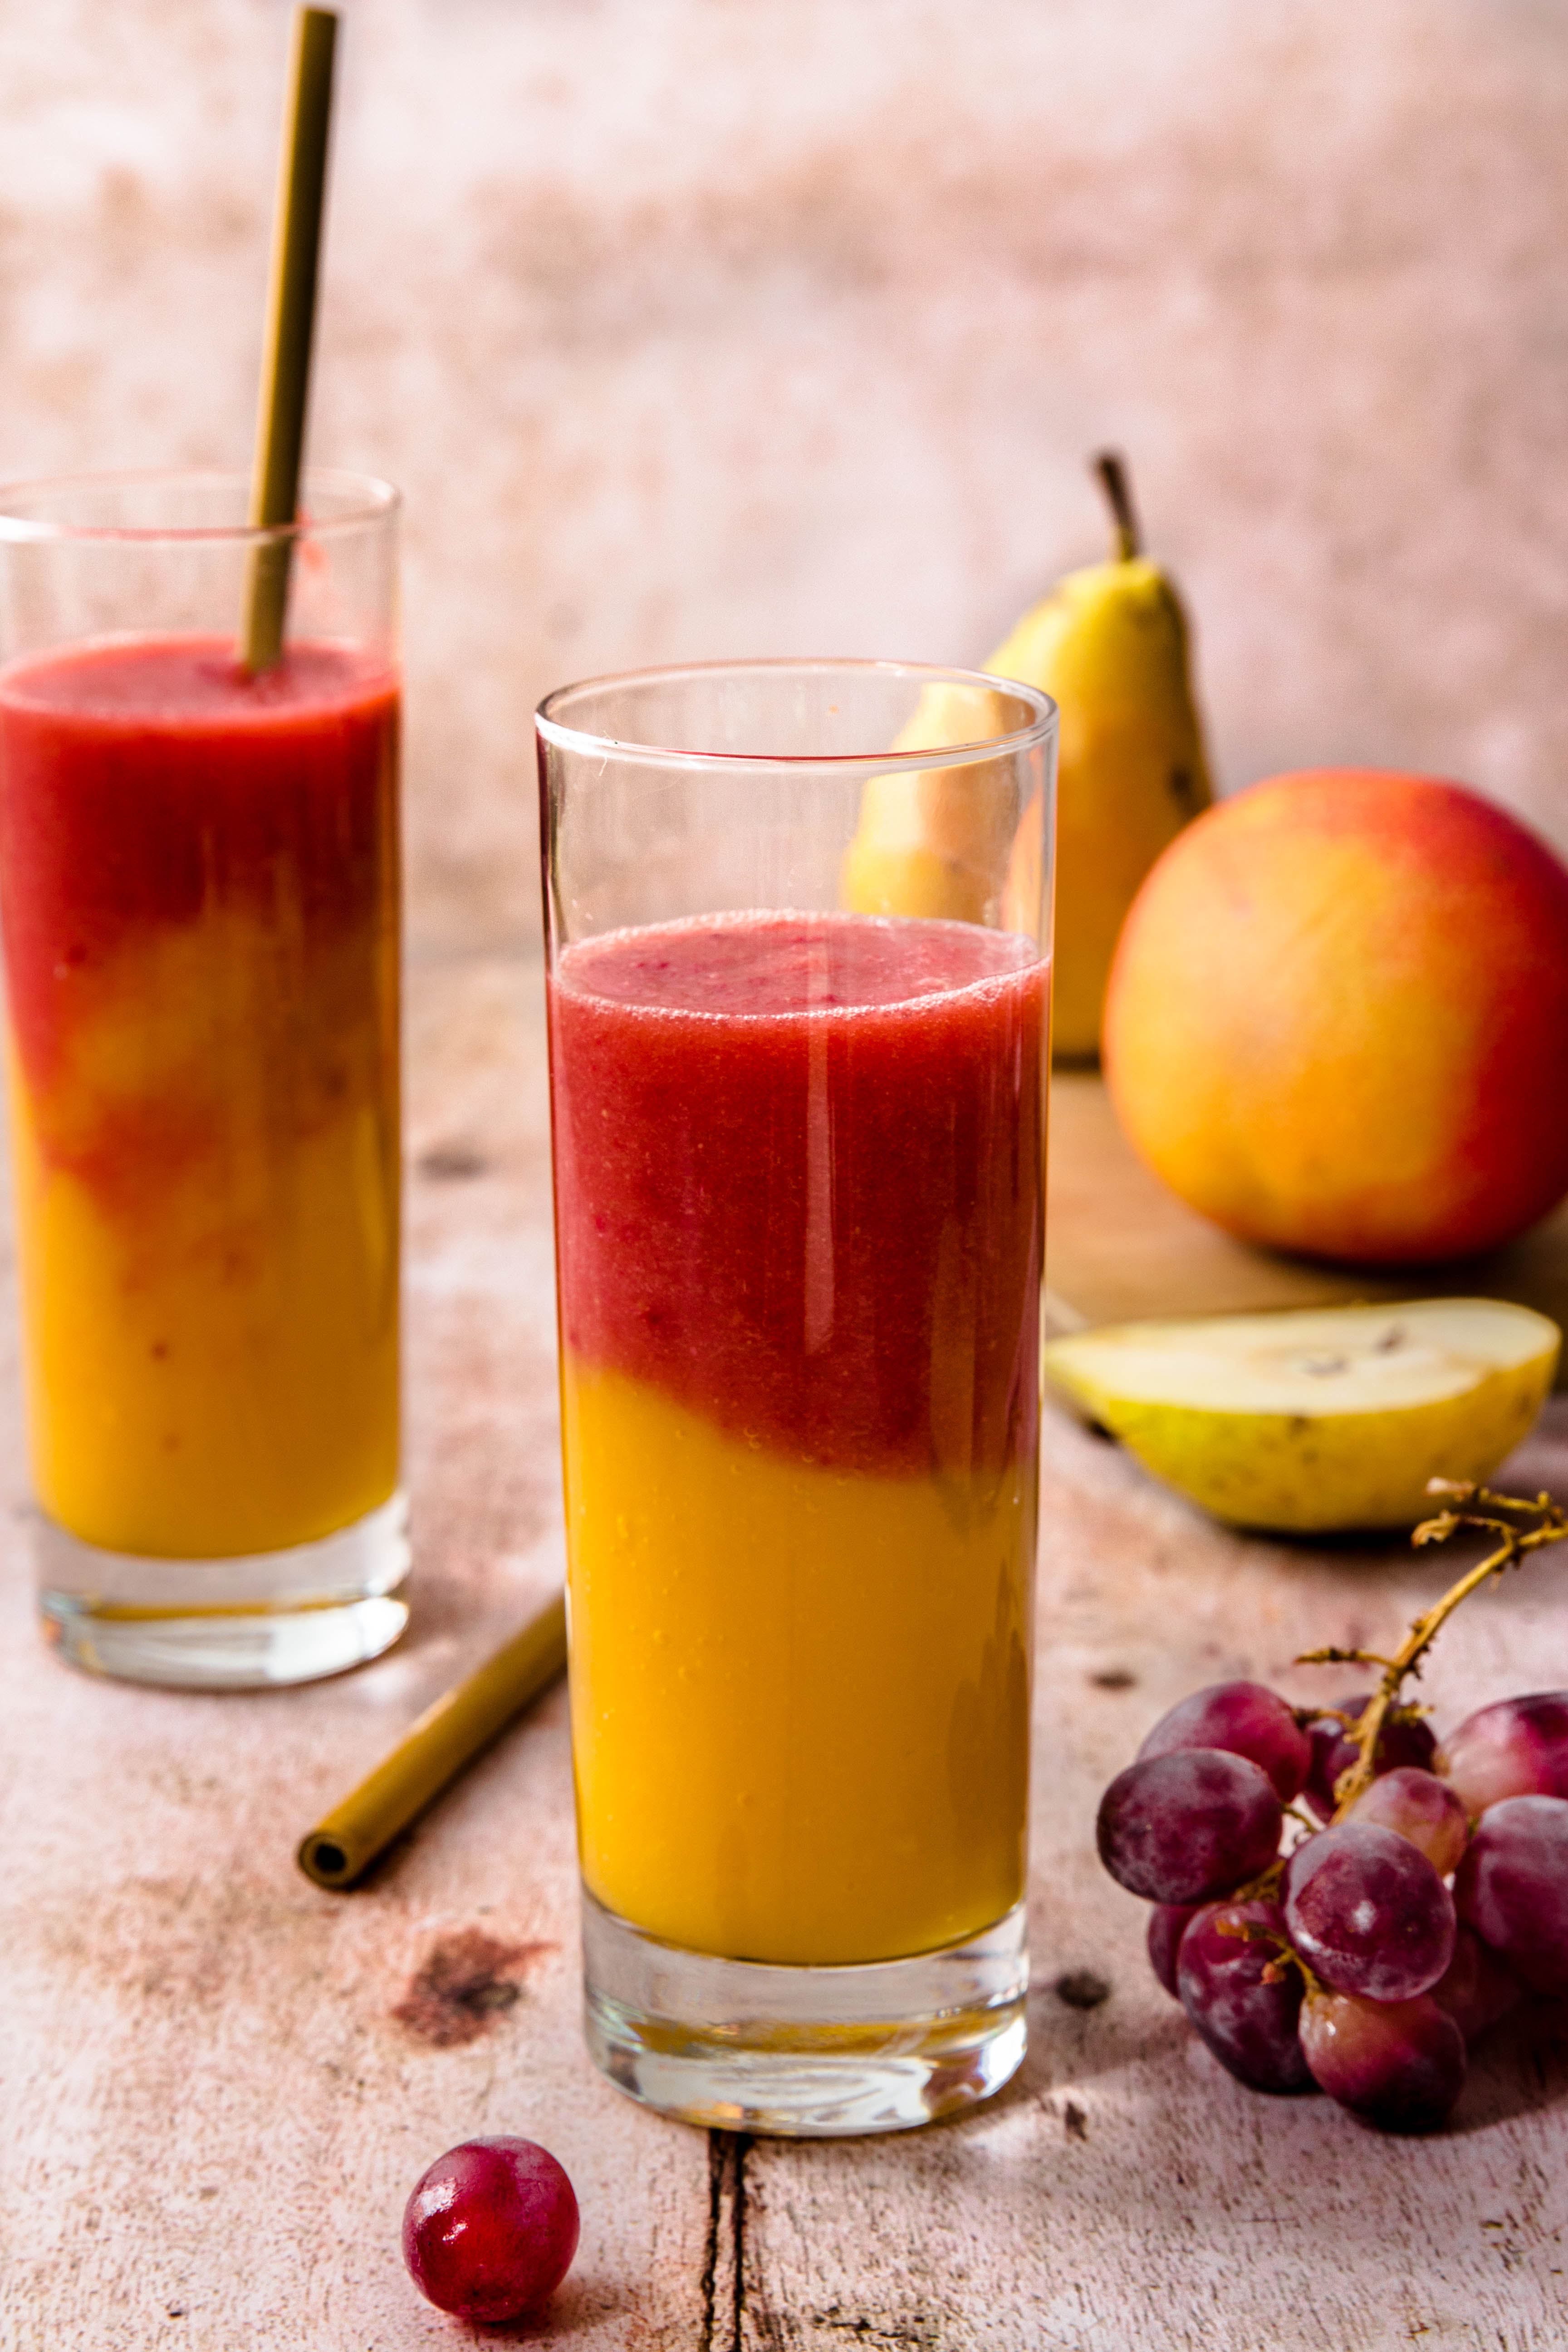 Smoothie bicolor mangue, poire et fruits rouges - photography